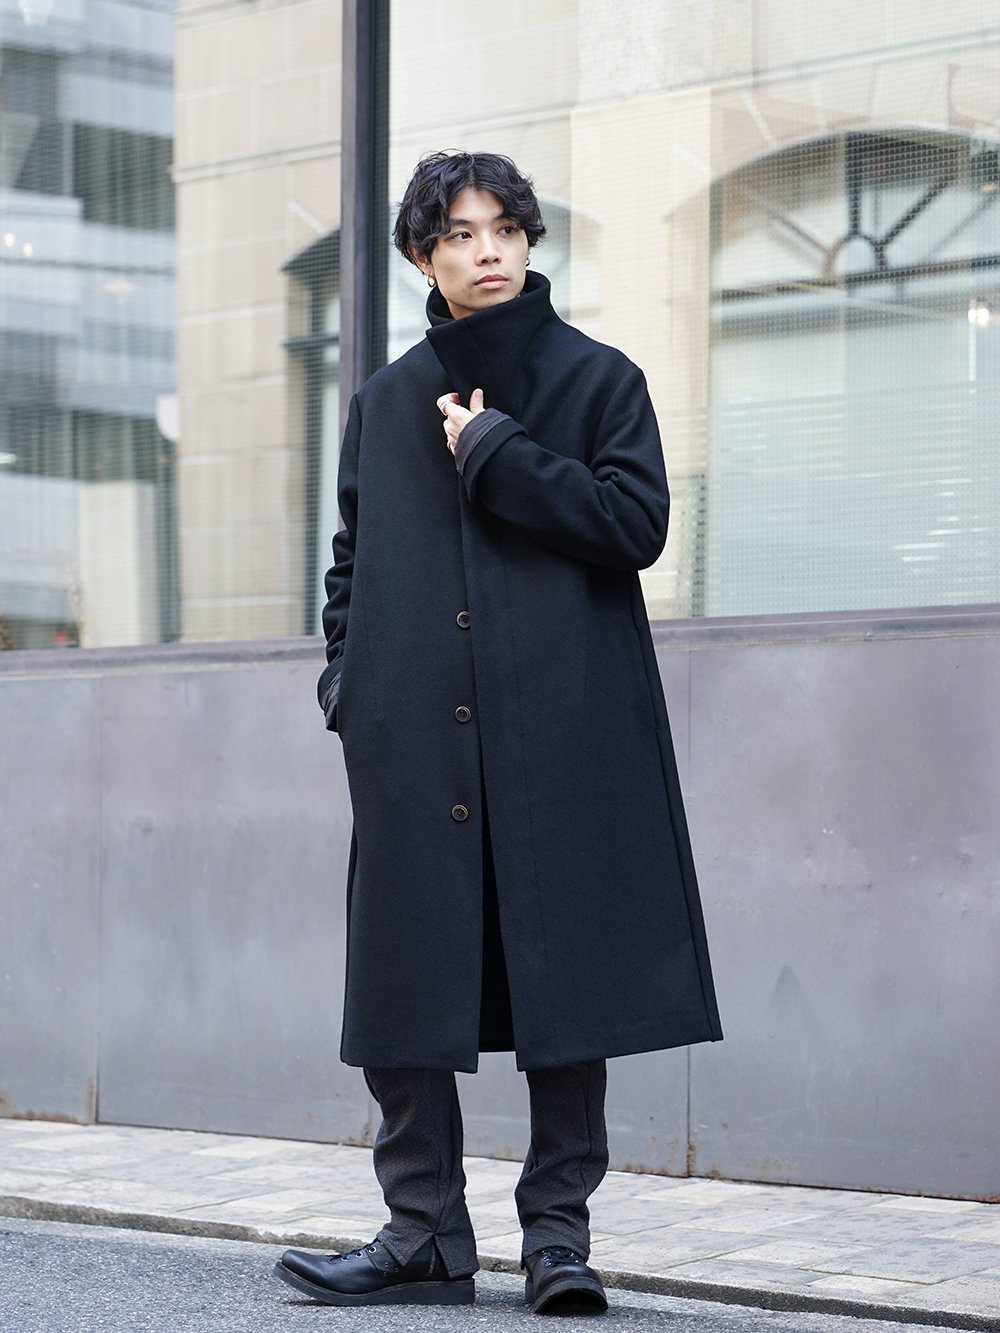 individual sentiments 19-20 AW 4Coat Style - 4-001